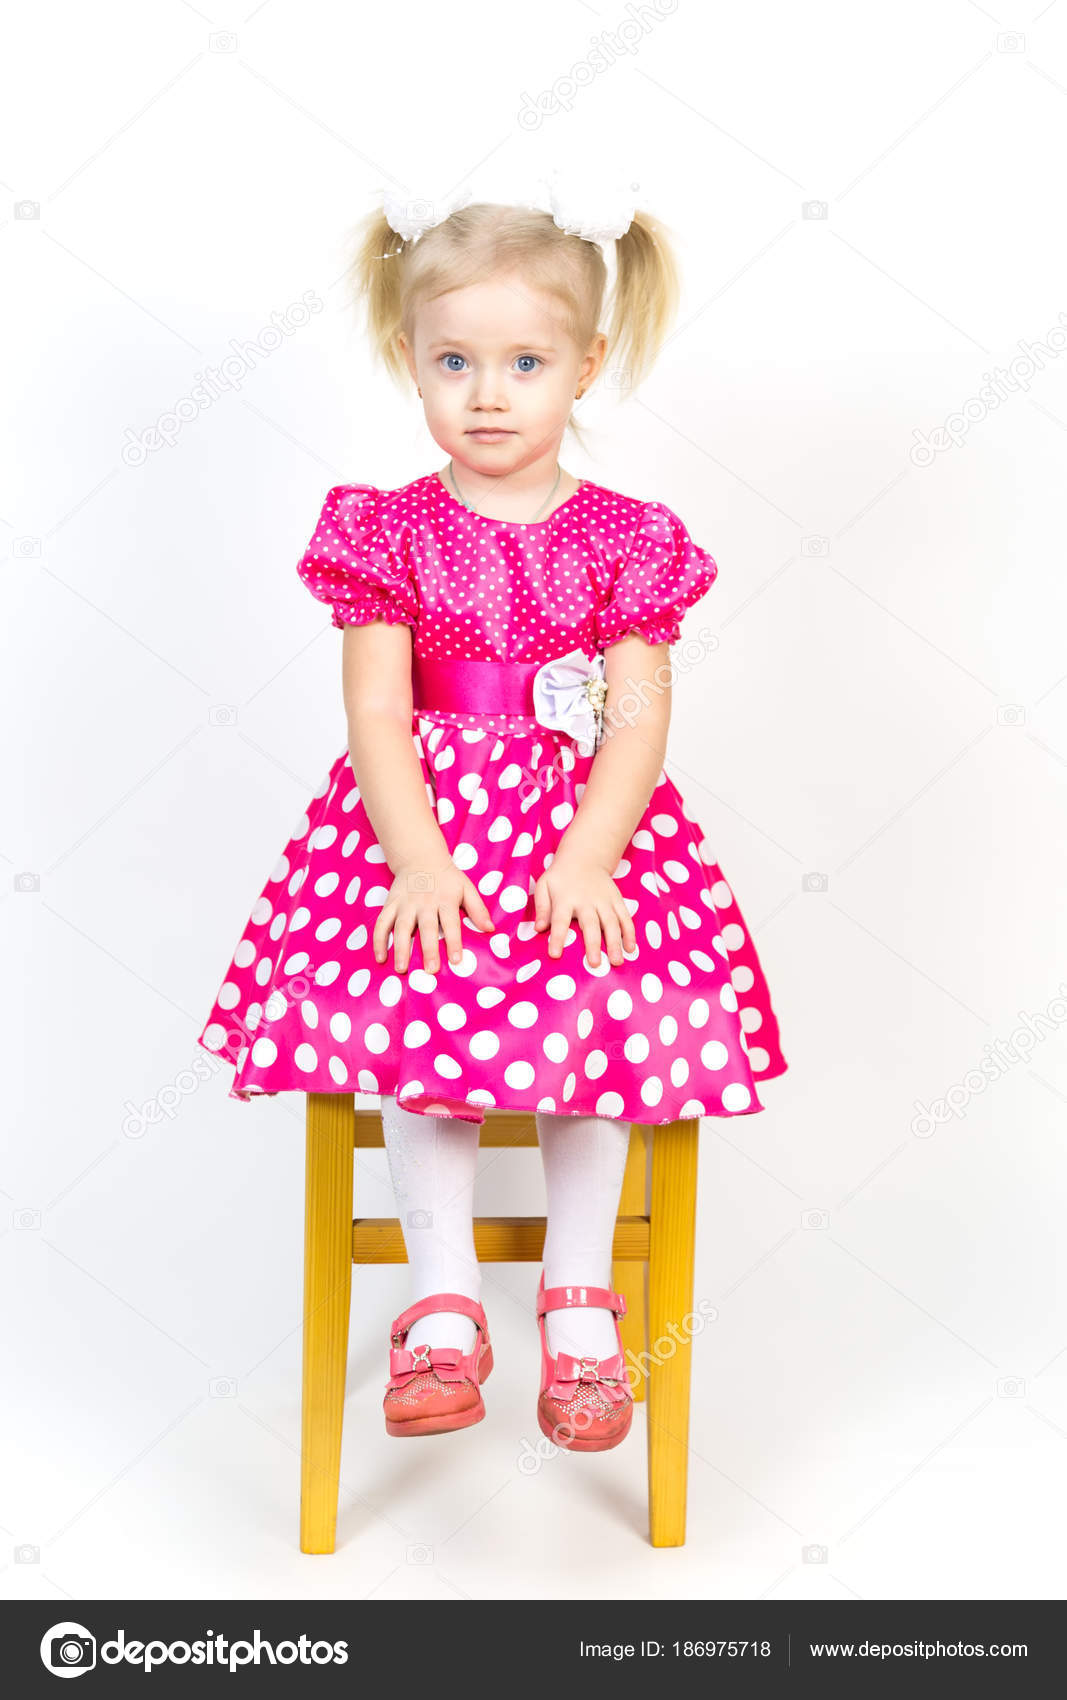 a6f90839de Little girl 3 years old in a red dress with bows in her hair. — · Beautiful  girl in a beautiful fluffy dress posing against a white wall.